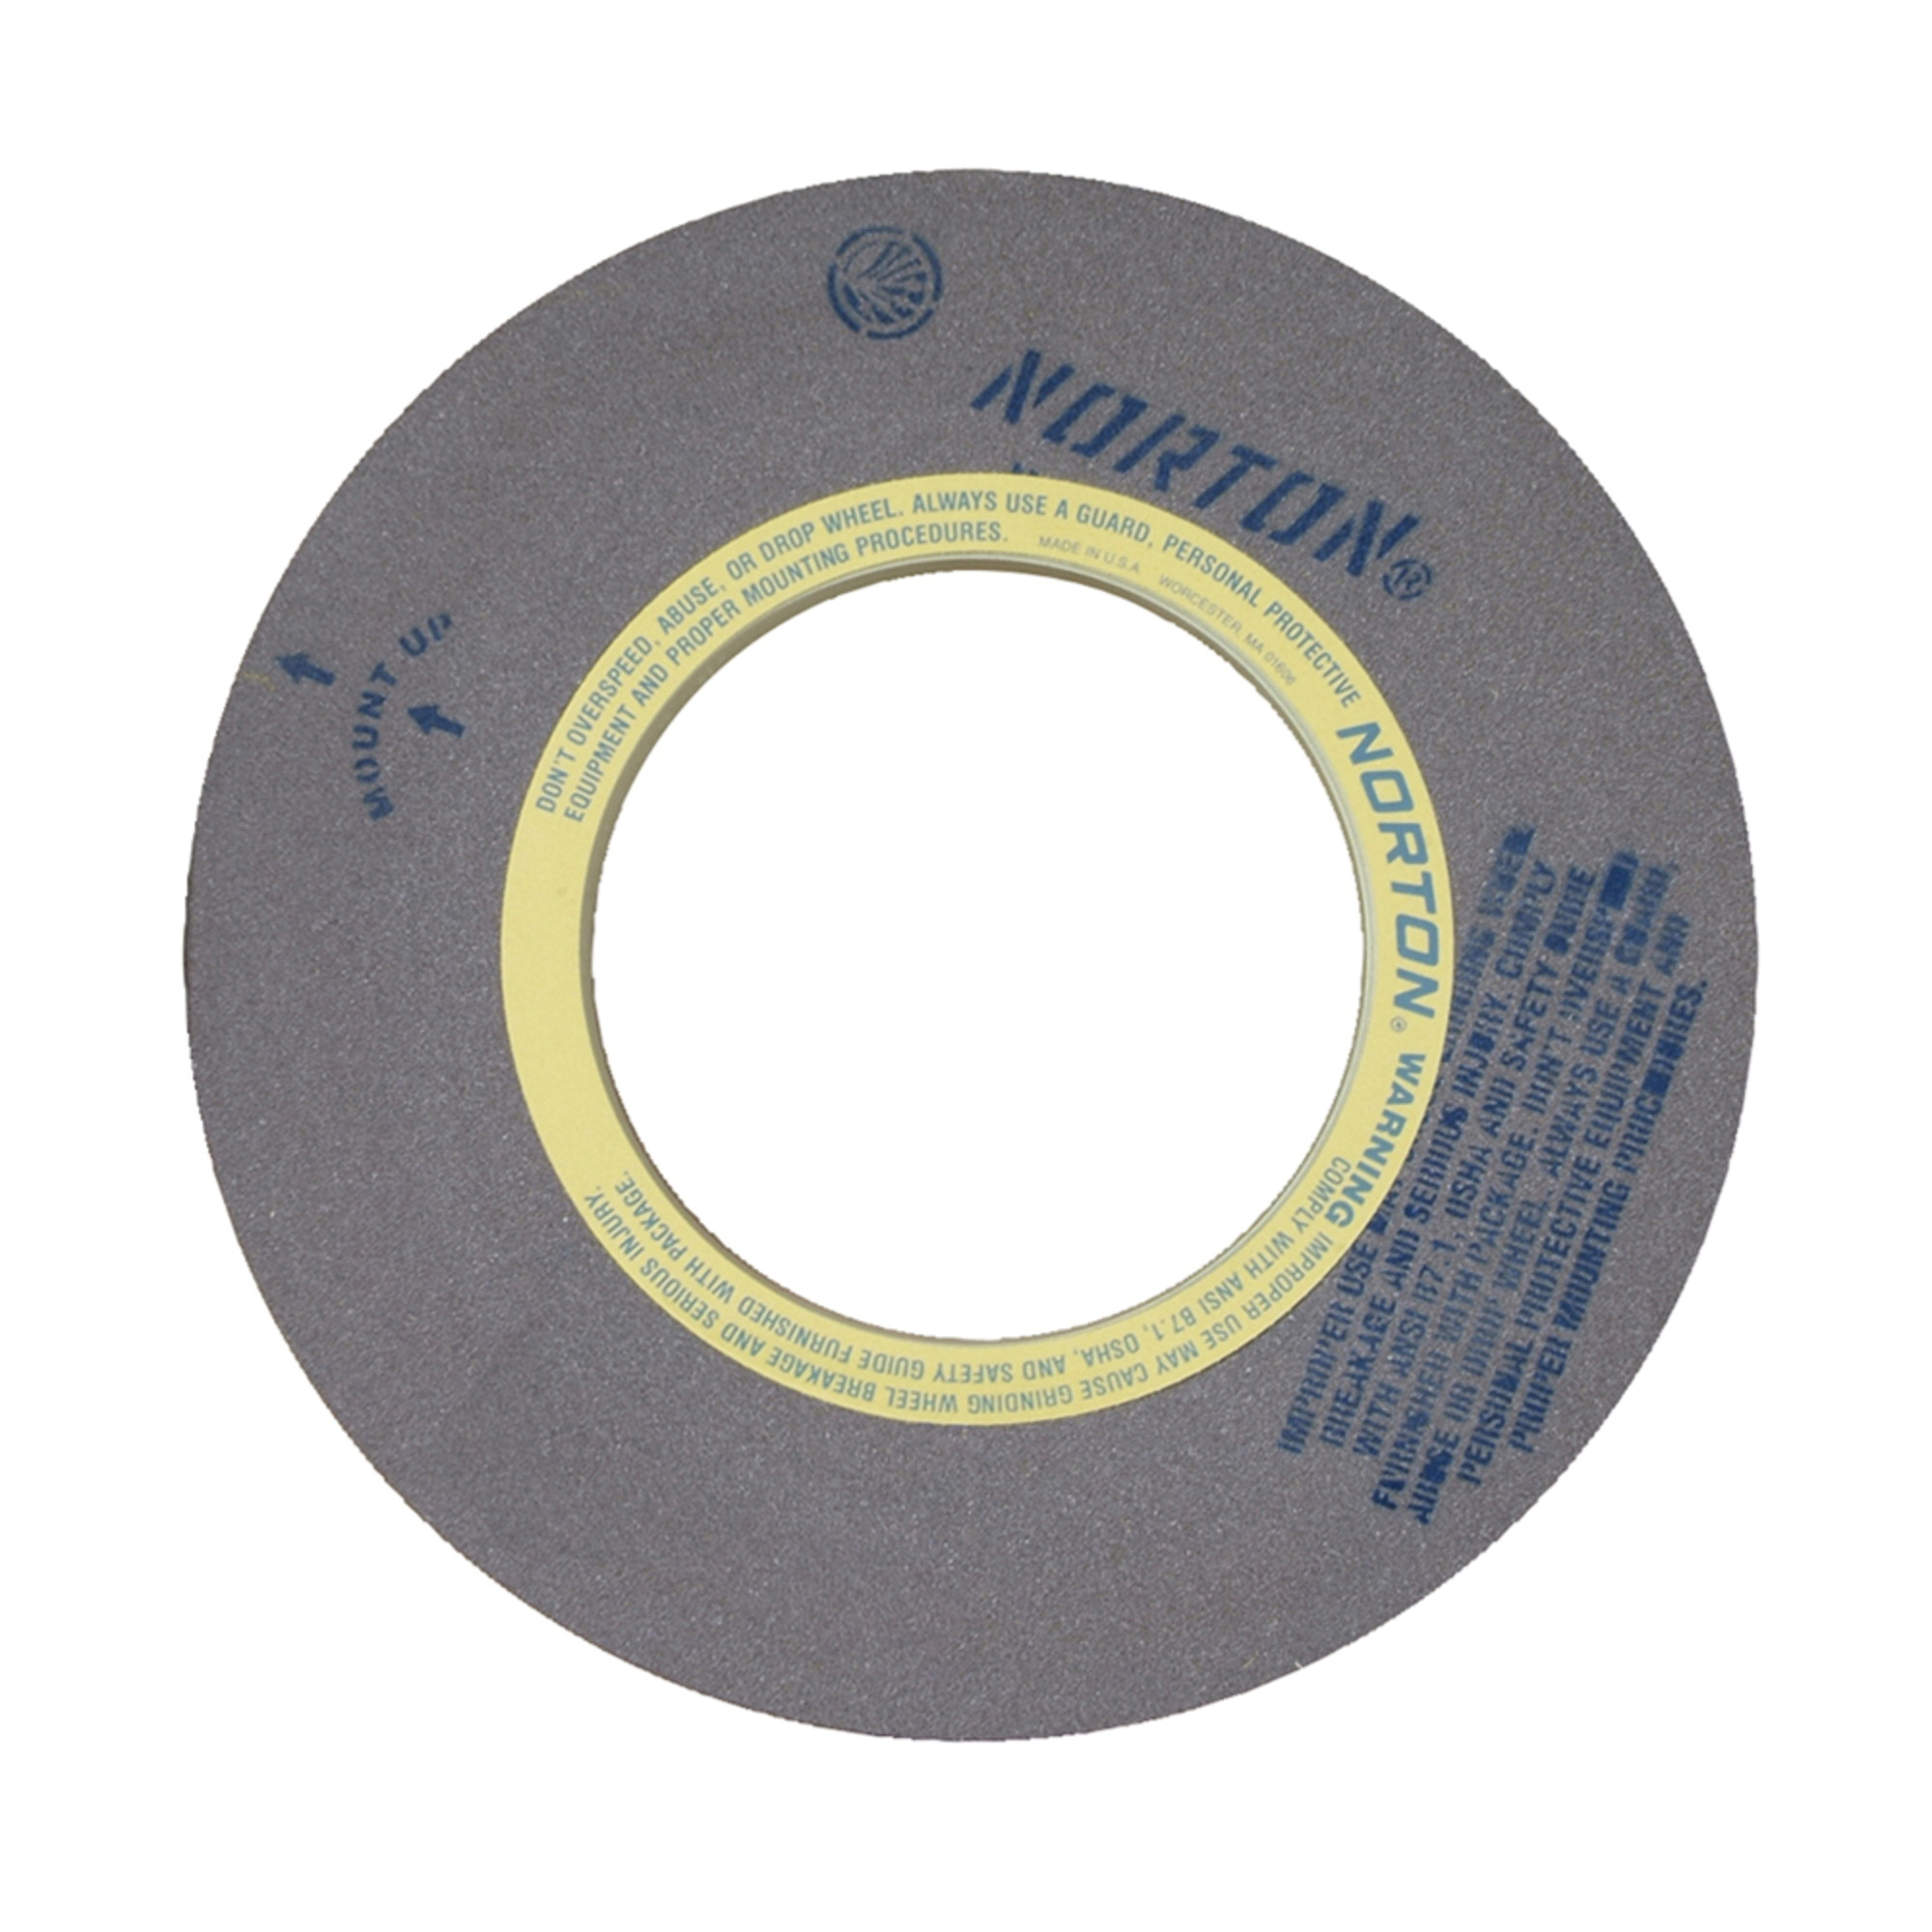 Norton® 69078666727 64A Centerless Grinding Wheel, 20 in Dia x 4 in THK, 12 in Center Hole, 80 Grit, Aluminum Oxide Abrasive